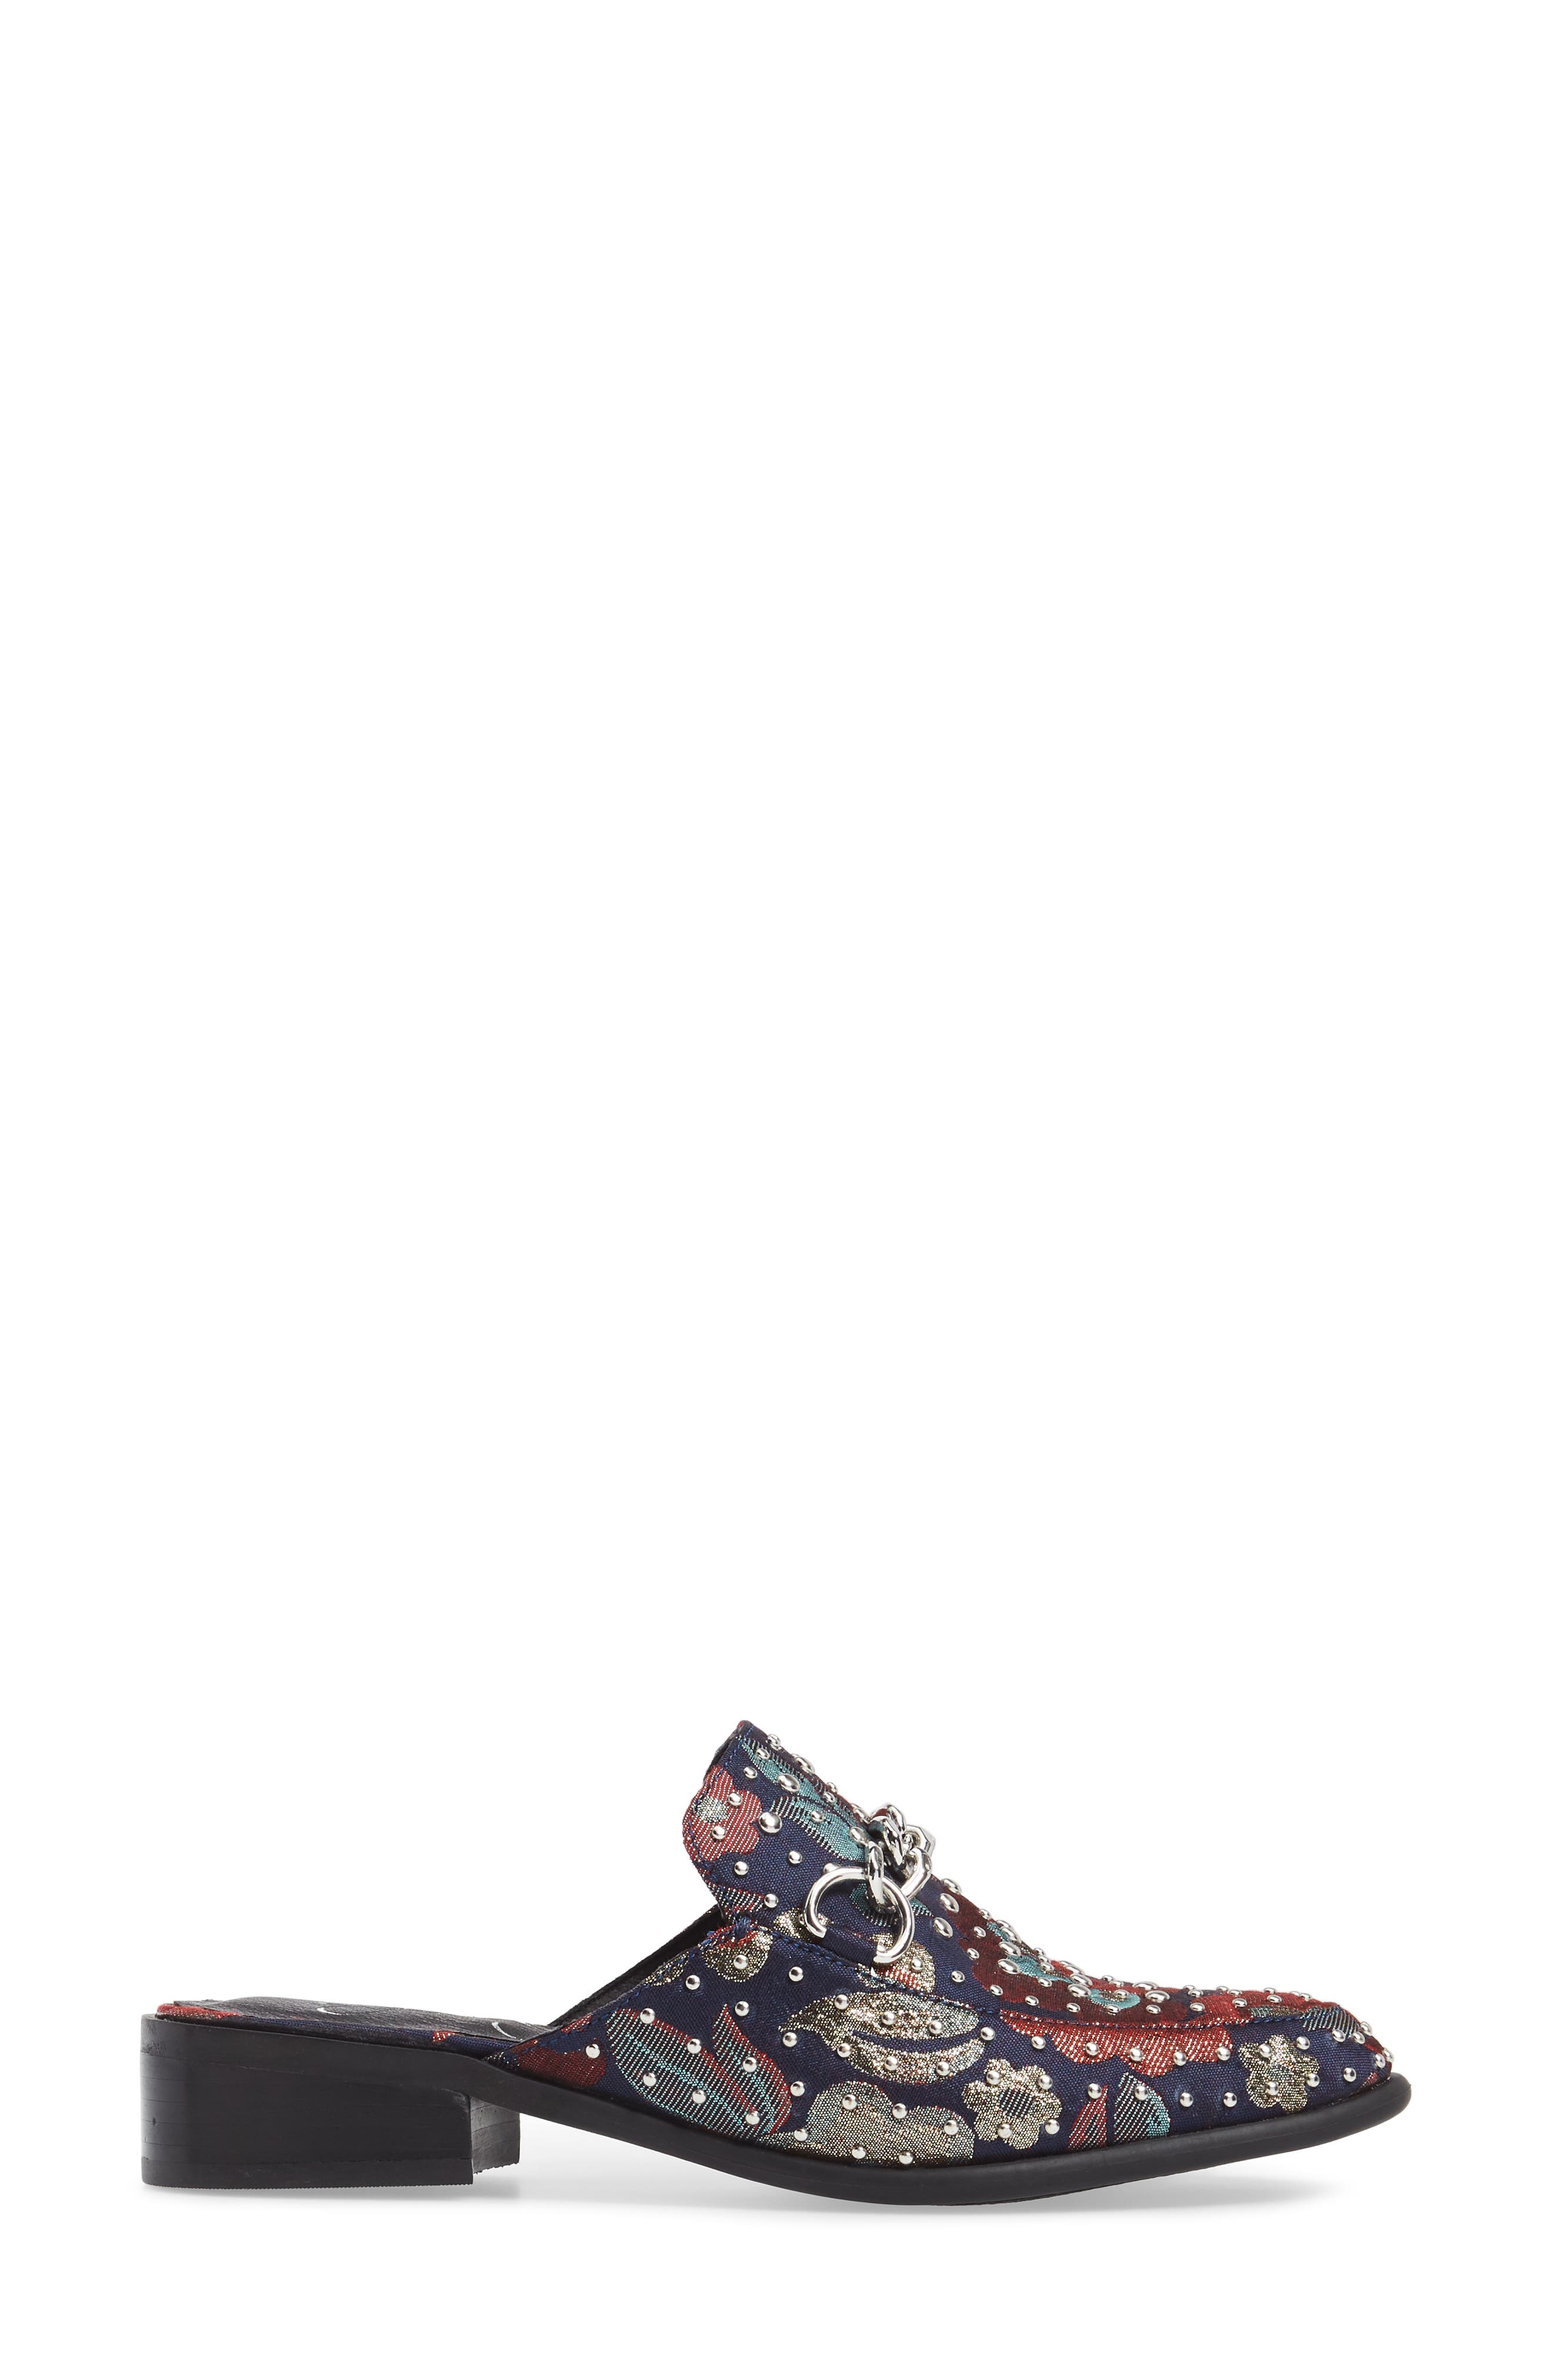 Beez Loafer Mule,                             Alternate thumbnail 3, color,                             Blue Multi Brocade Fabric